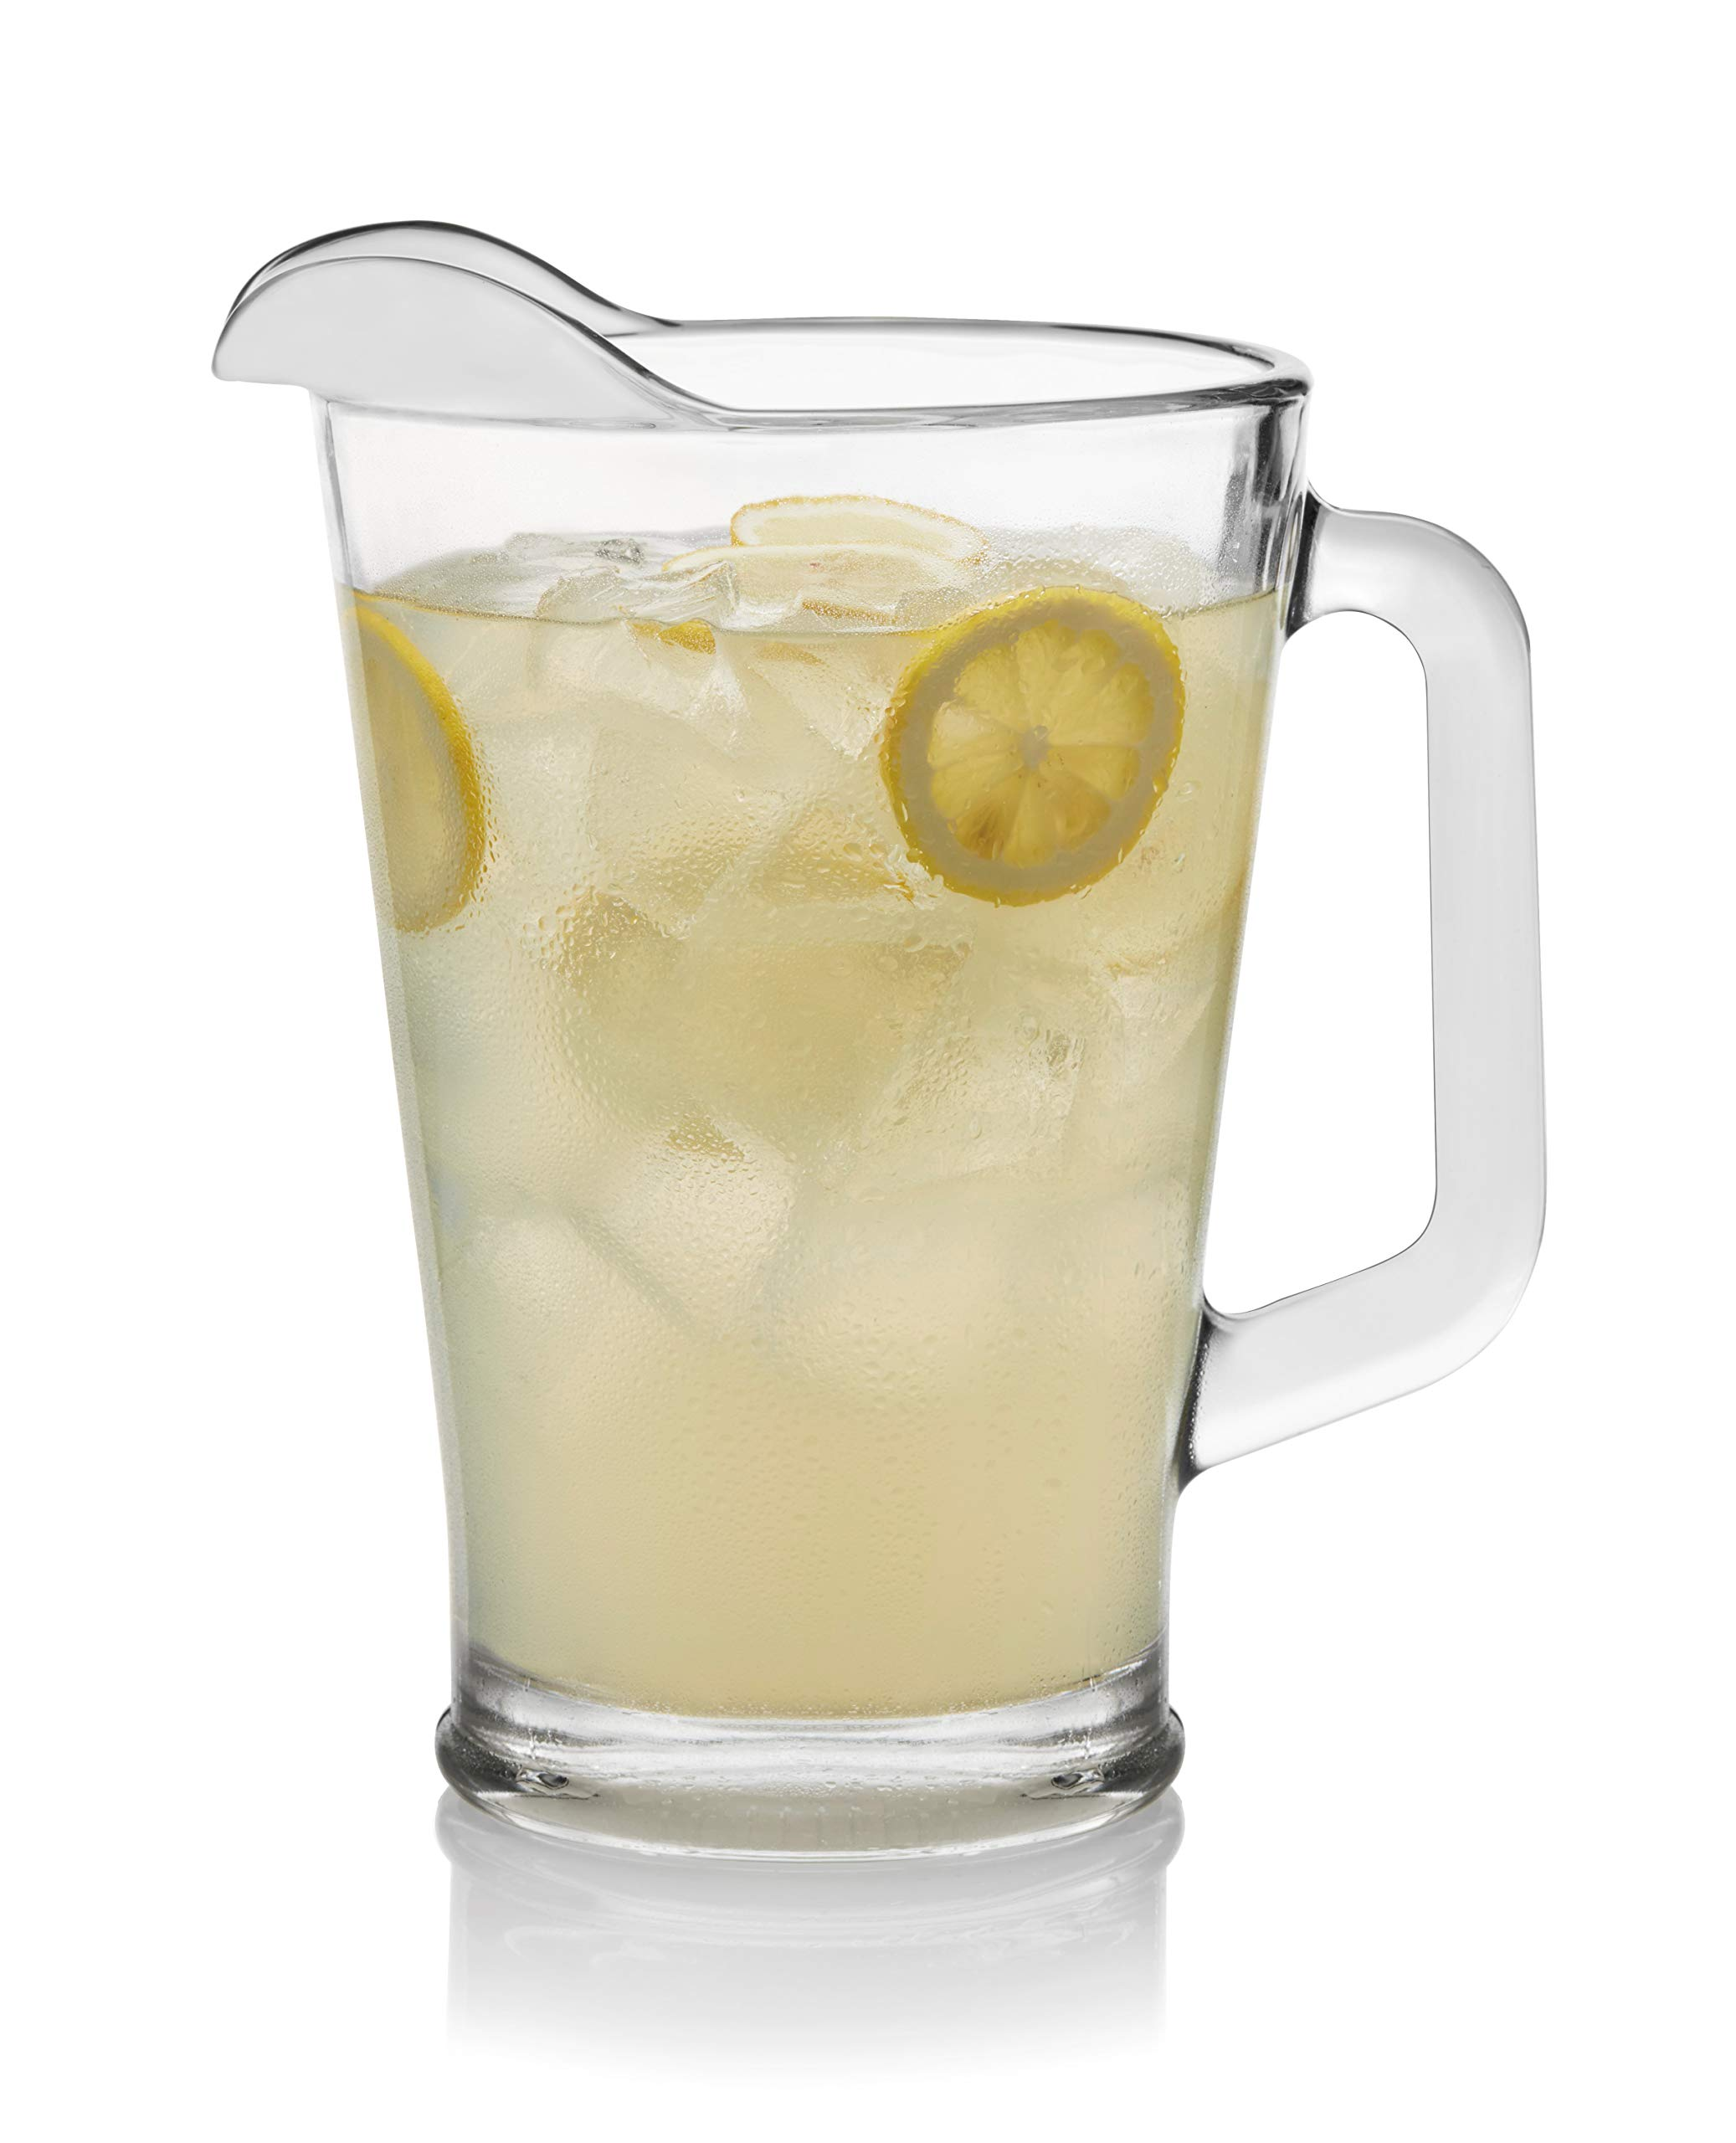 Libbey 5260 1-60 Ounce Glass Serveware Pitcher, 9.23 Inch Height, Lead-Fre 1 Free, 60 oz, Clear